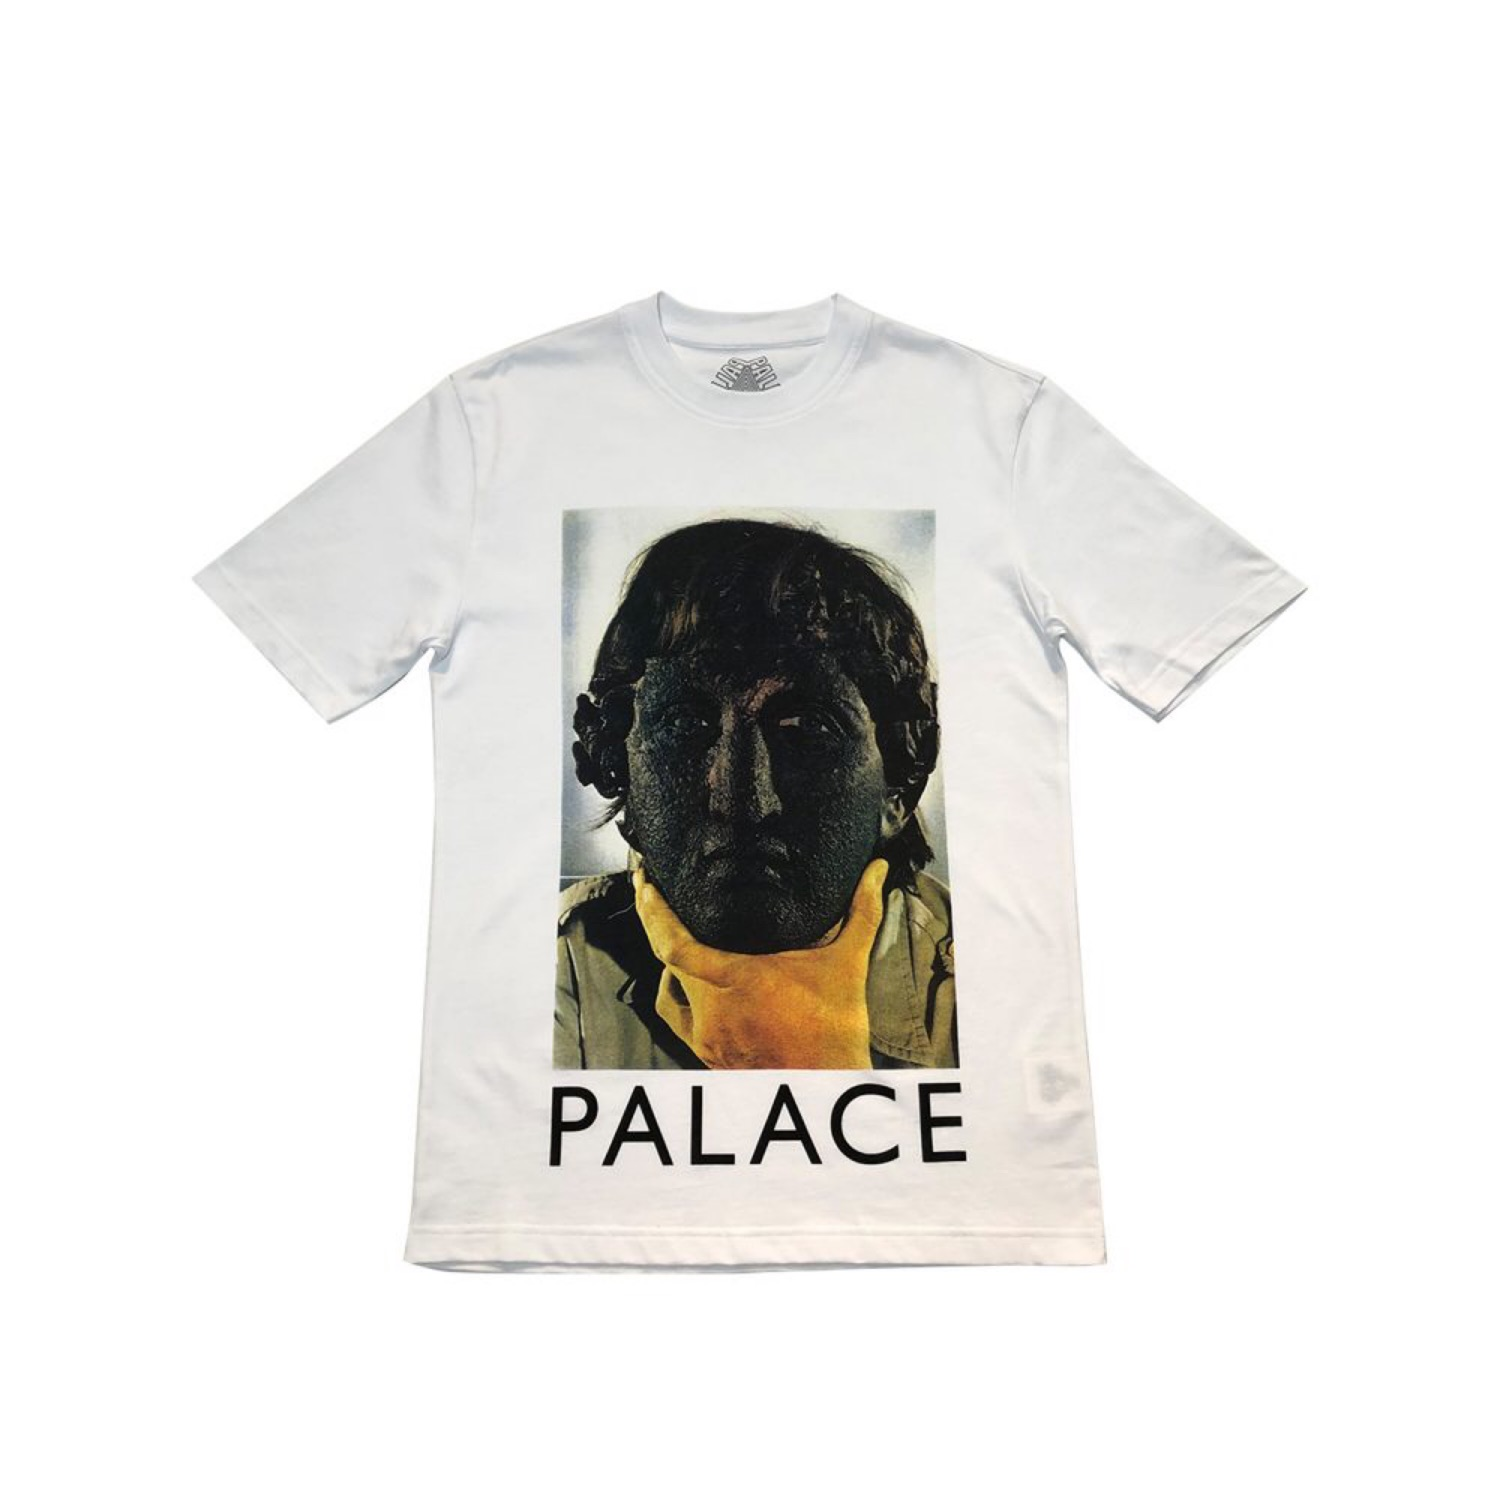 Palace Nicked Tee White Size Small